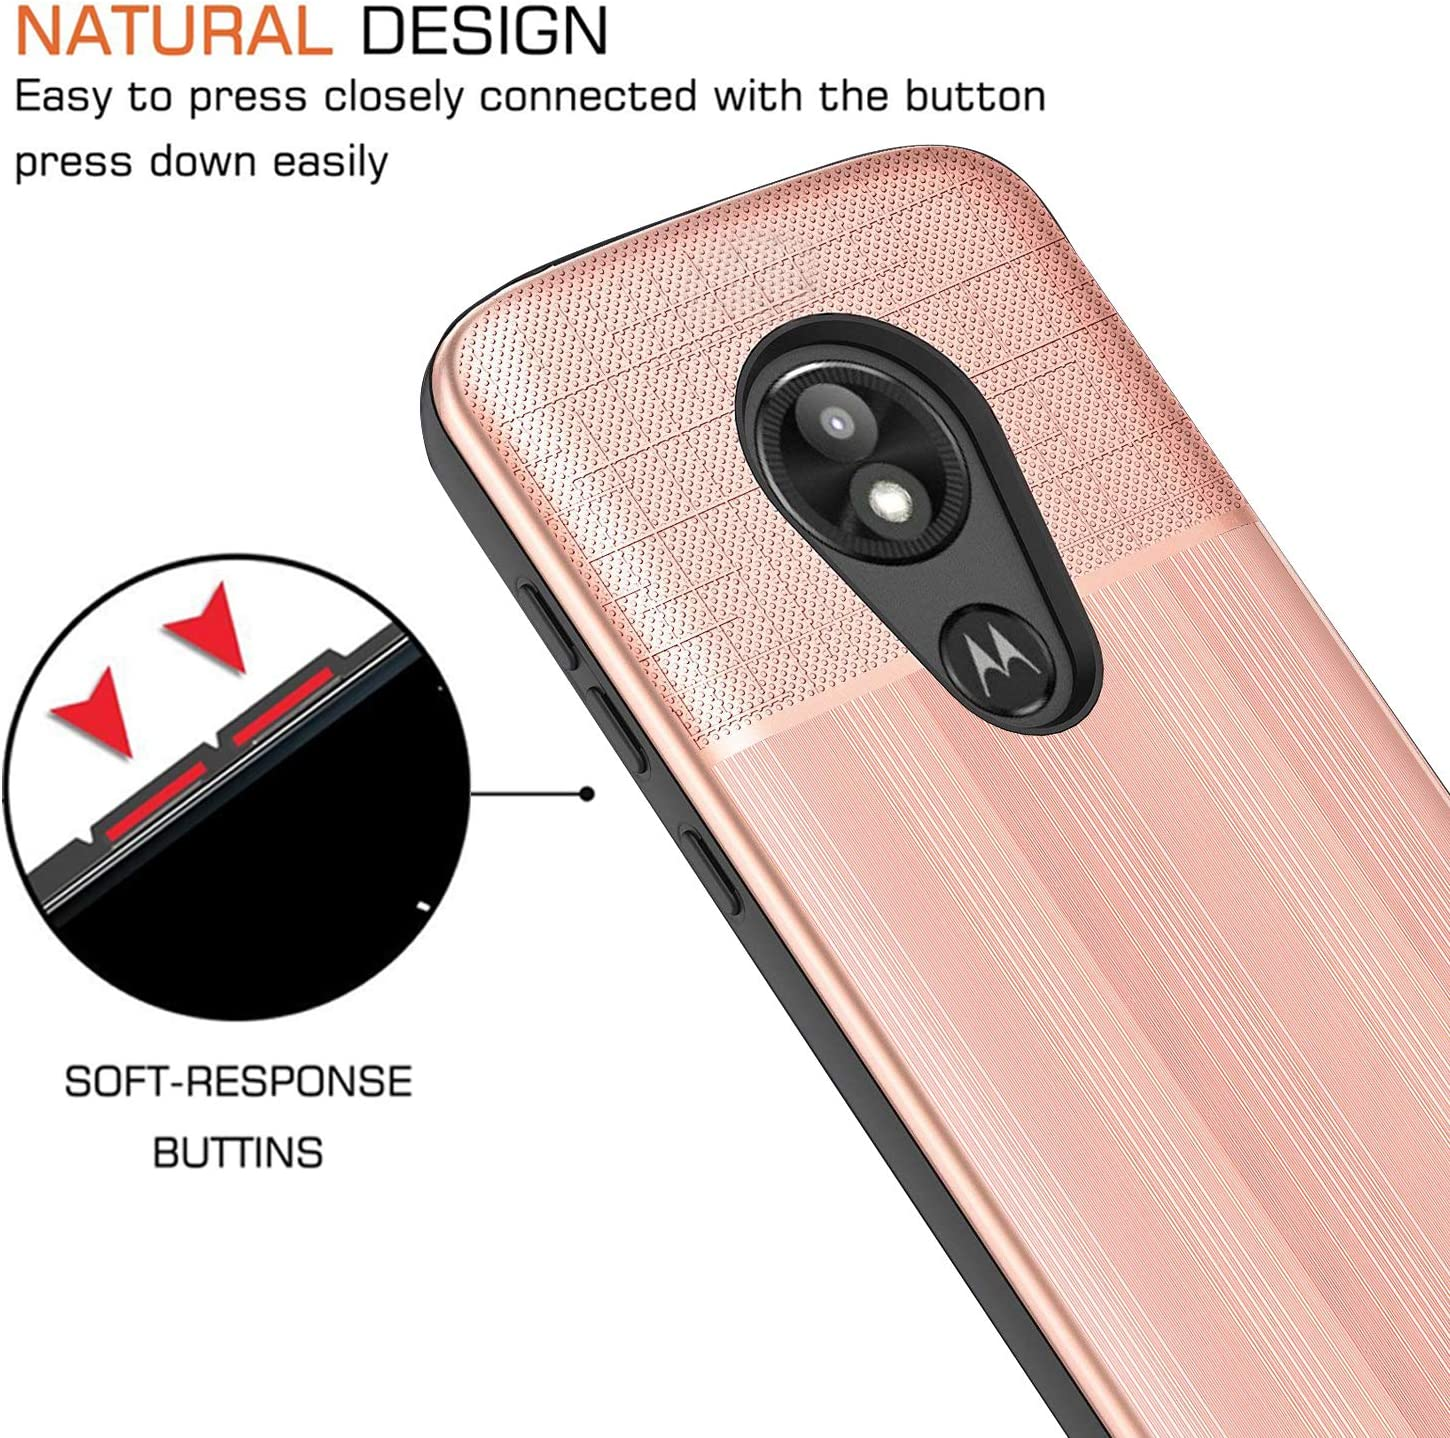 UniSpg for Moto E5 Play Phone Case,Motorola Moto E5 Cruise Case   Shockproof Drop Protection Hybrid Dual Layer PC Plastic Shell Armor Defender Protective Cover -Rose Gold